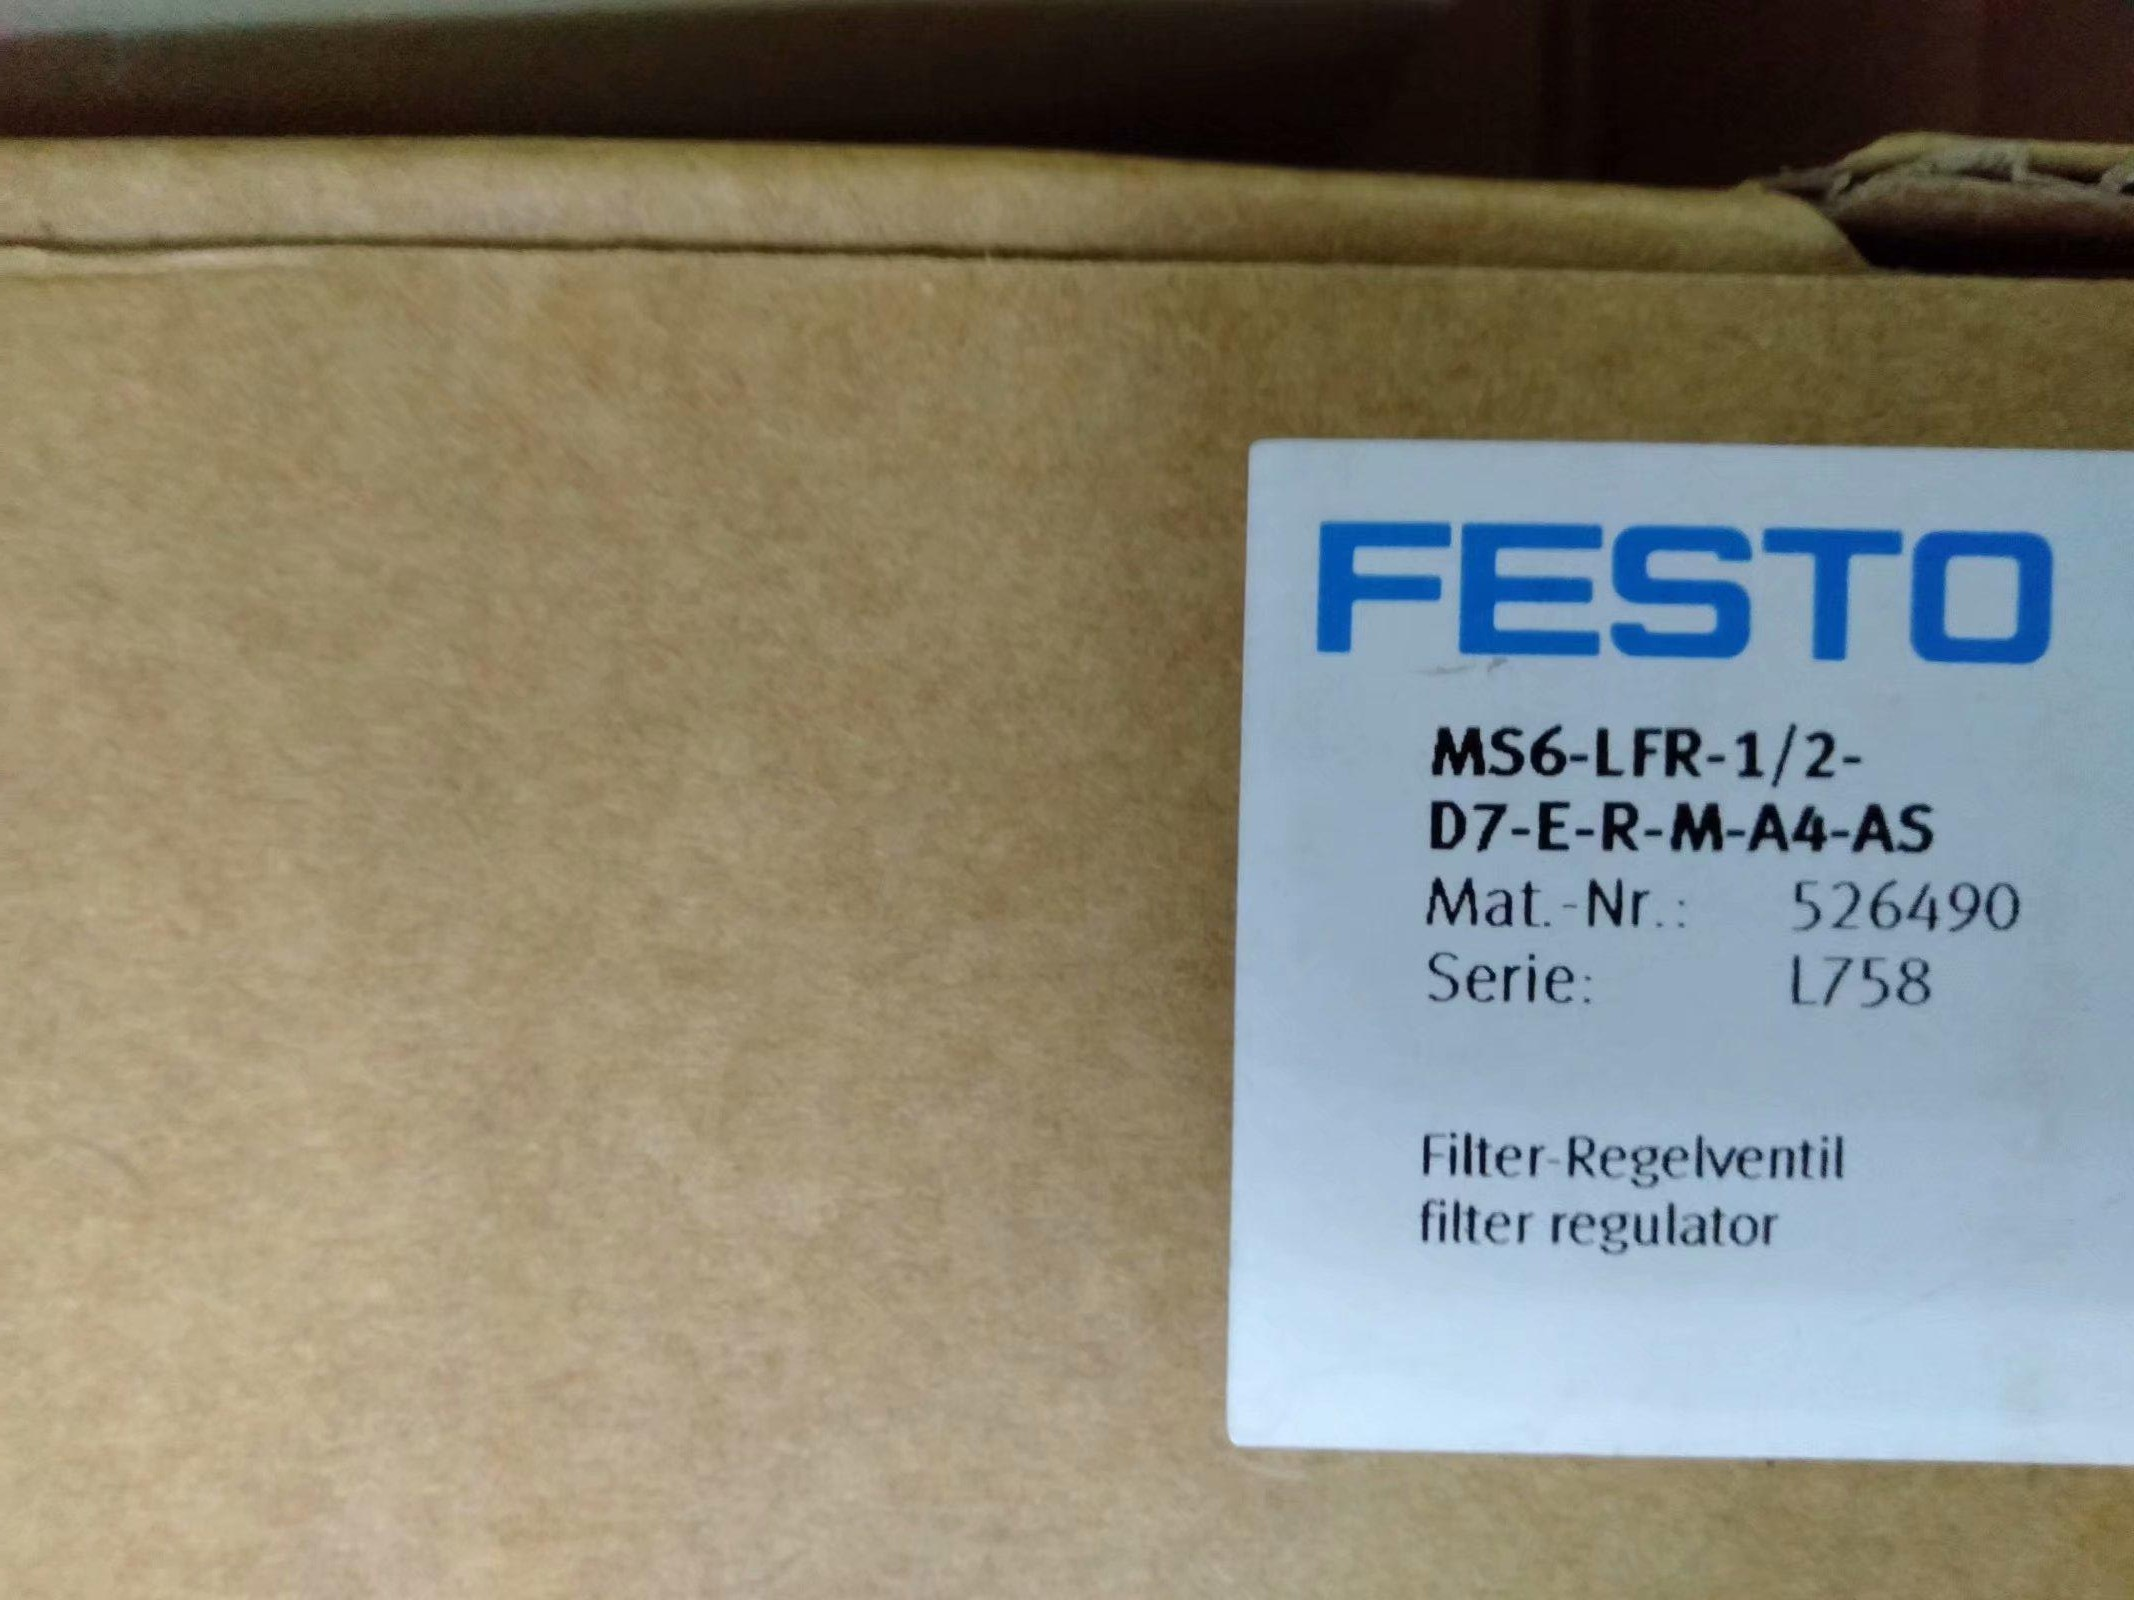 FESTO MS6-LFR-1/2-D7-E-R-M-A4-AS